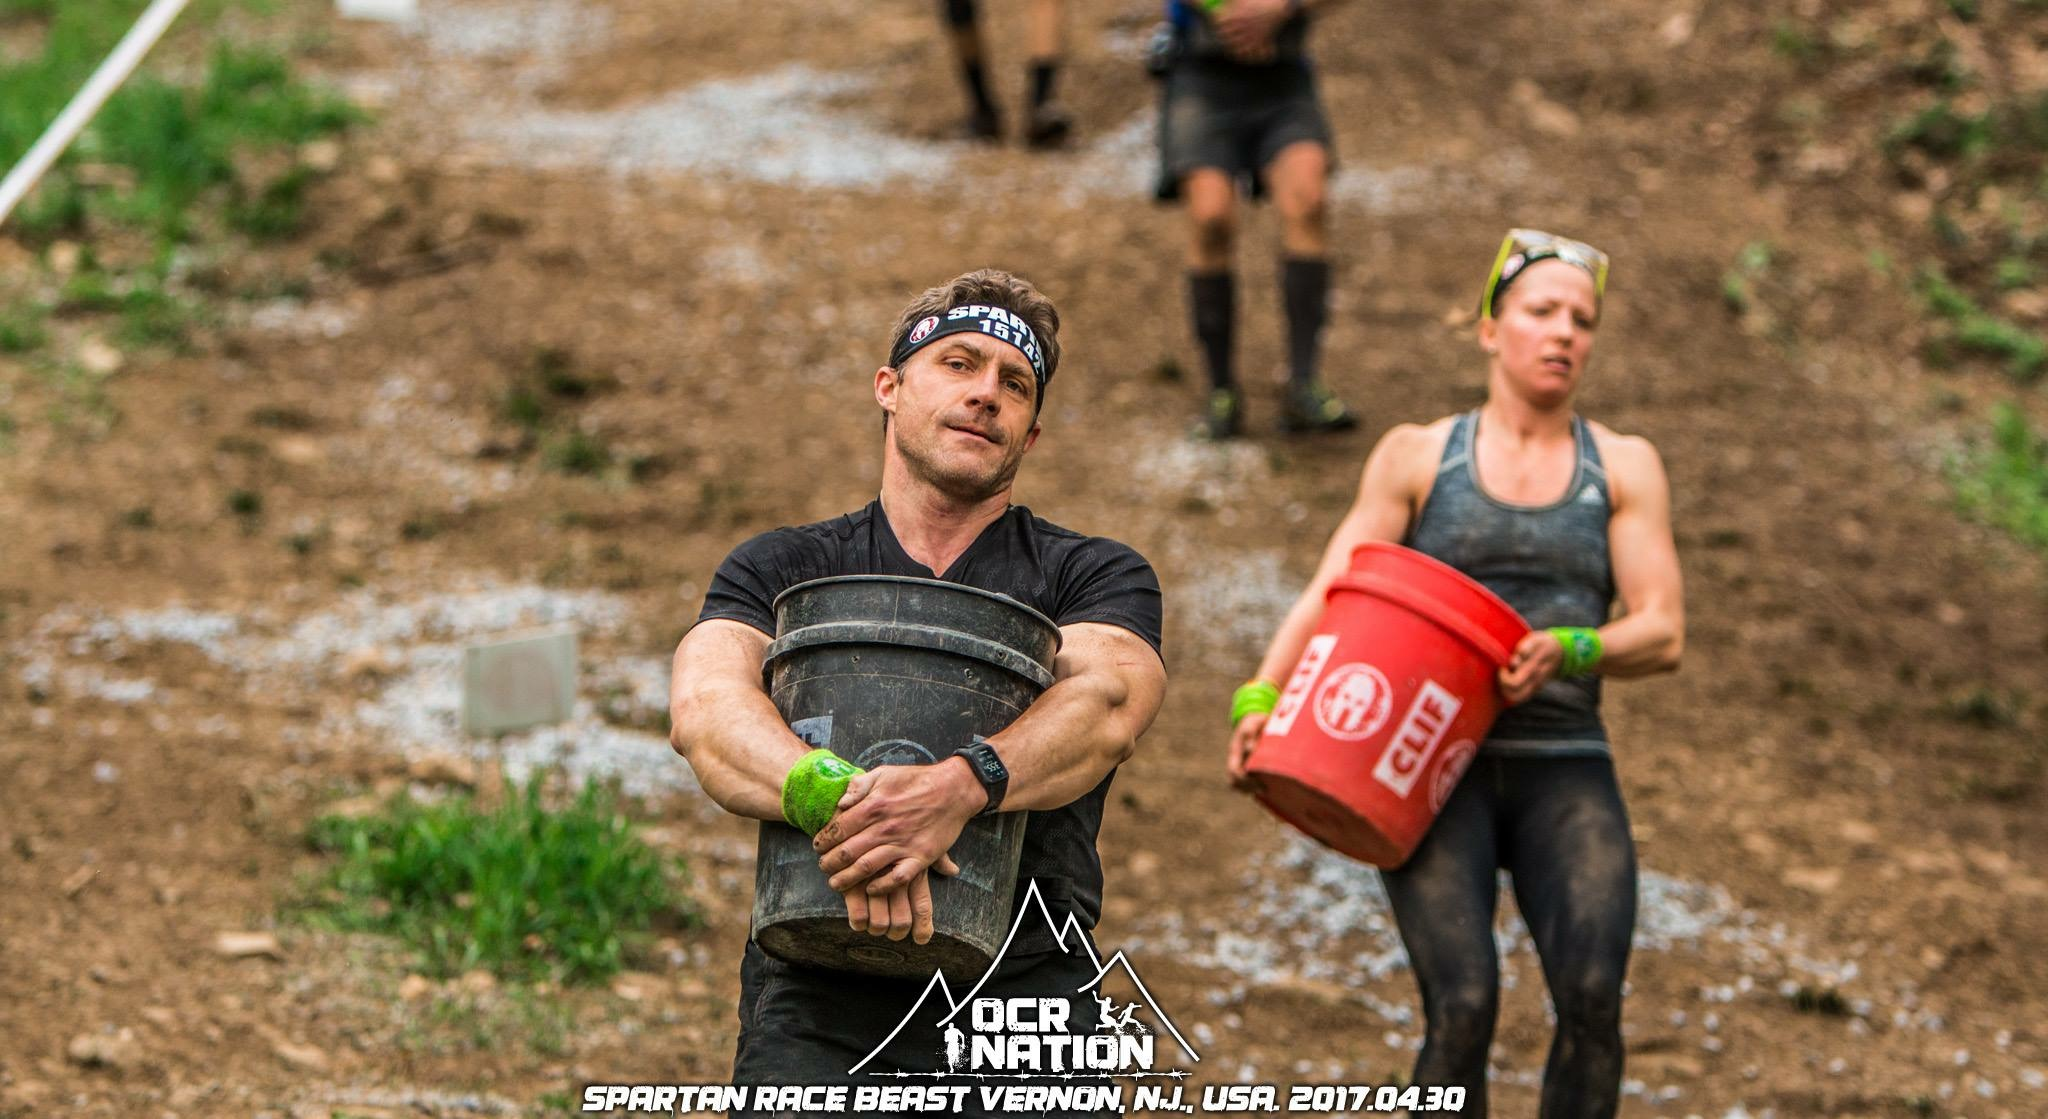 Spartan-NJ-UB-2017-Bucket-Carry-2